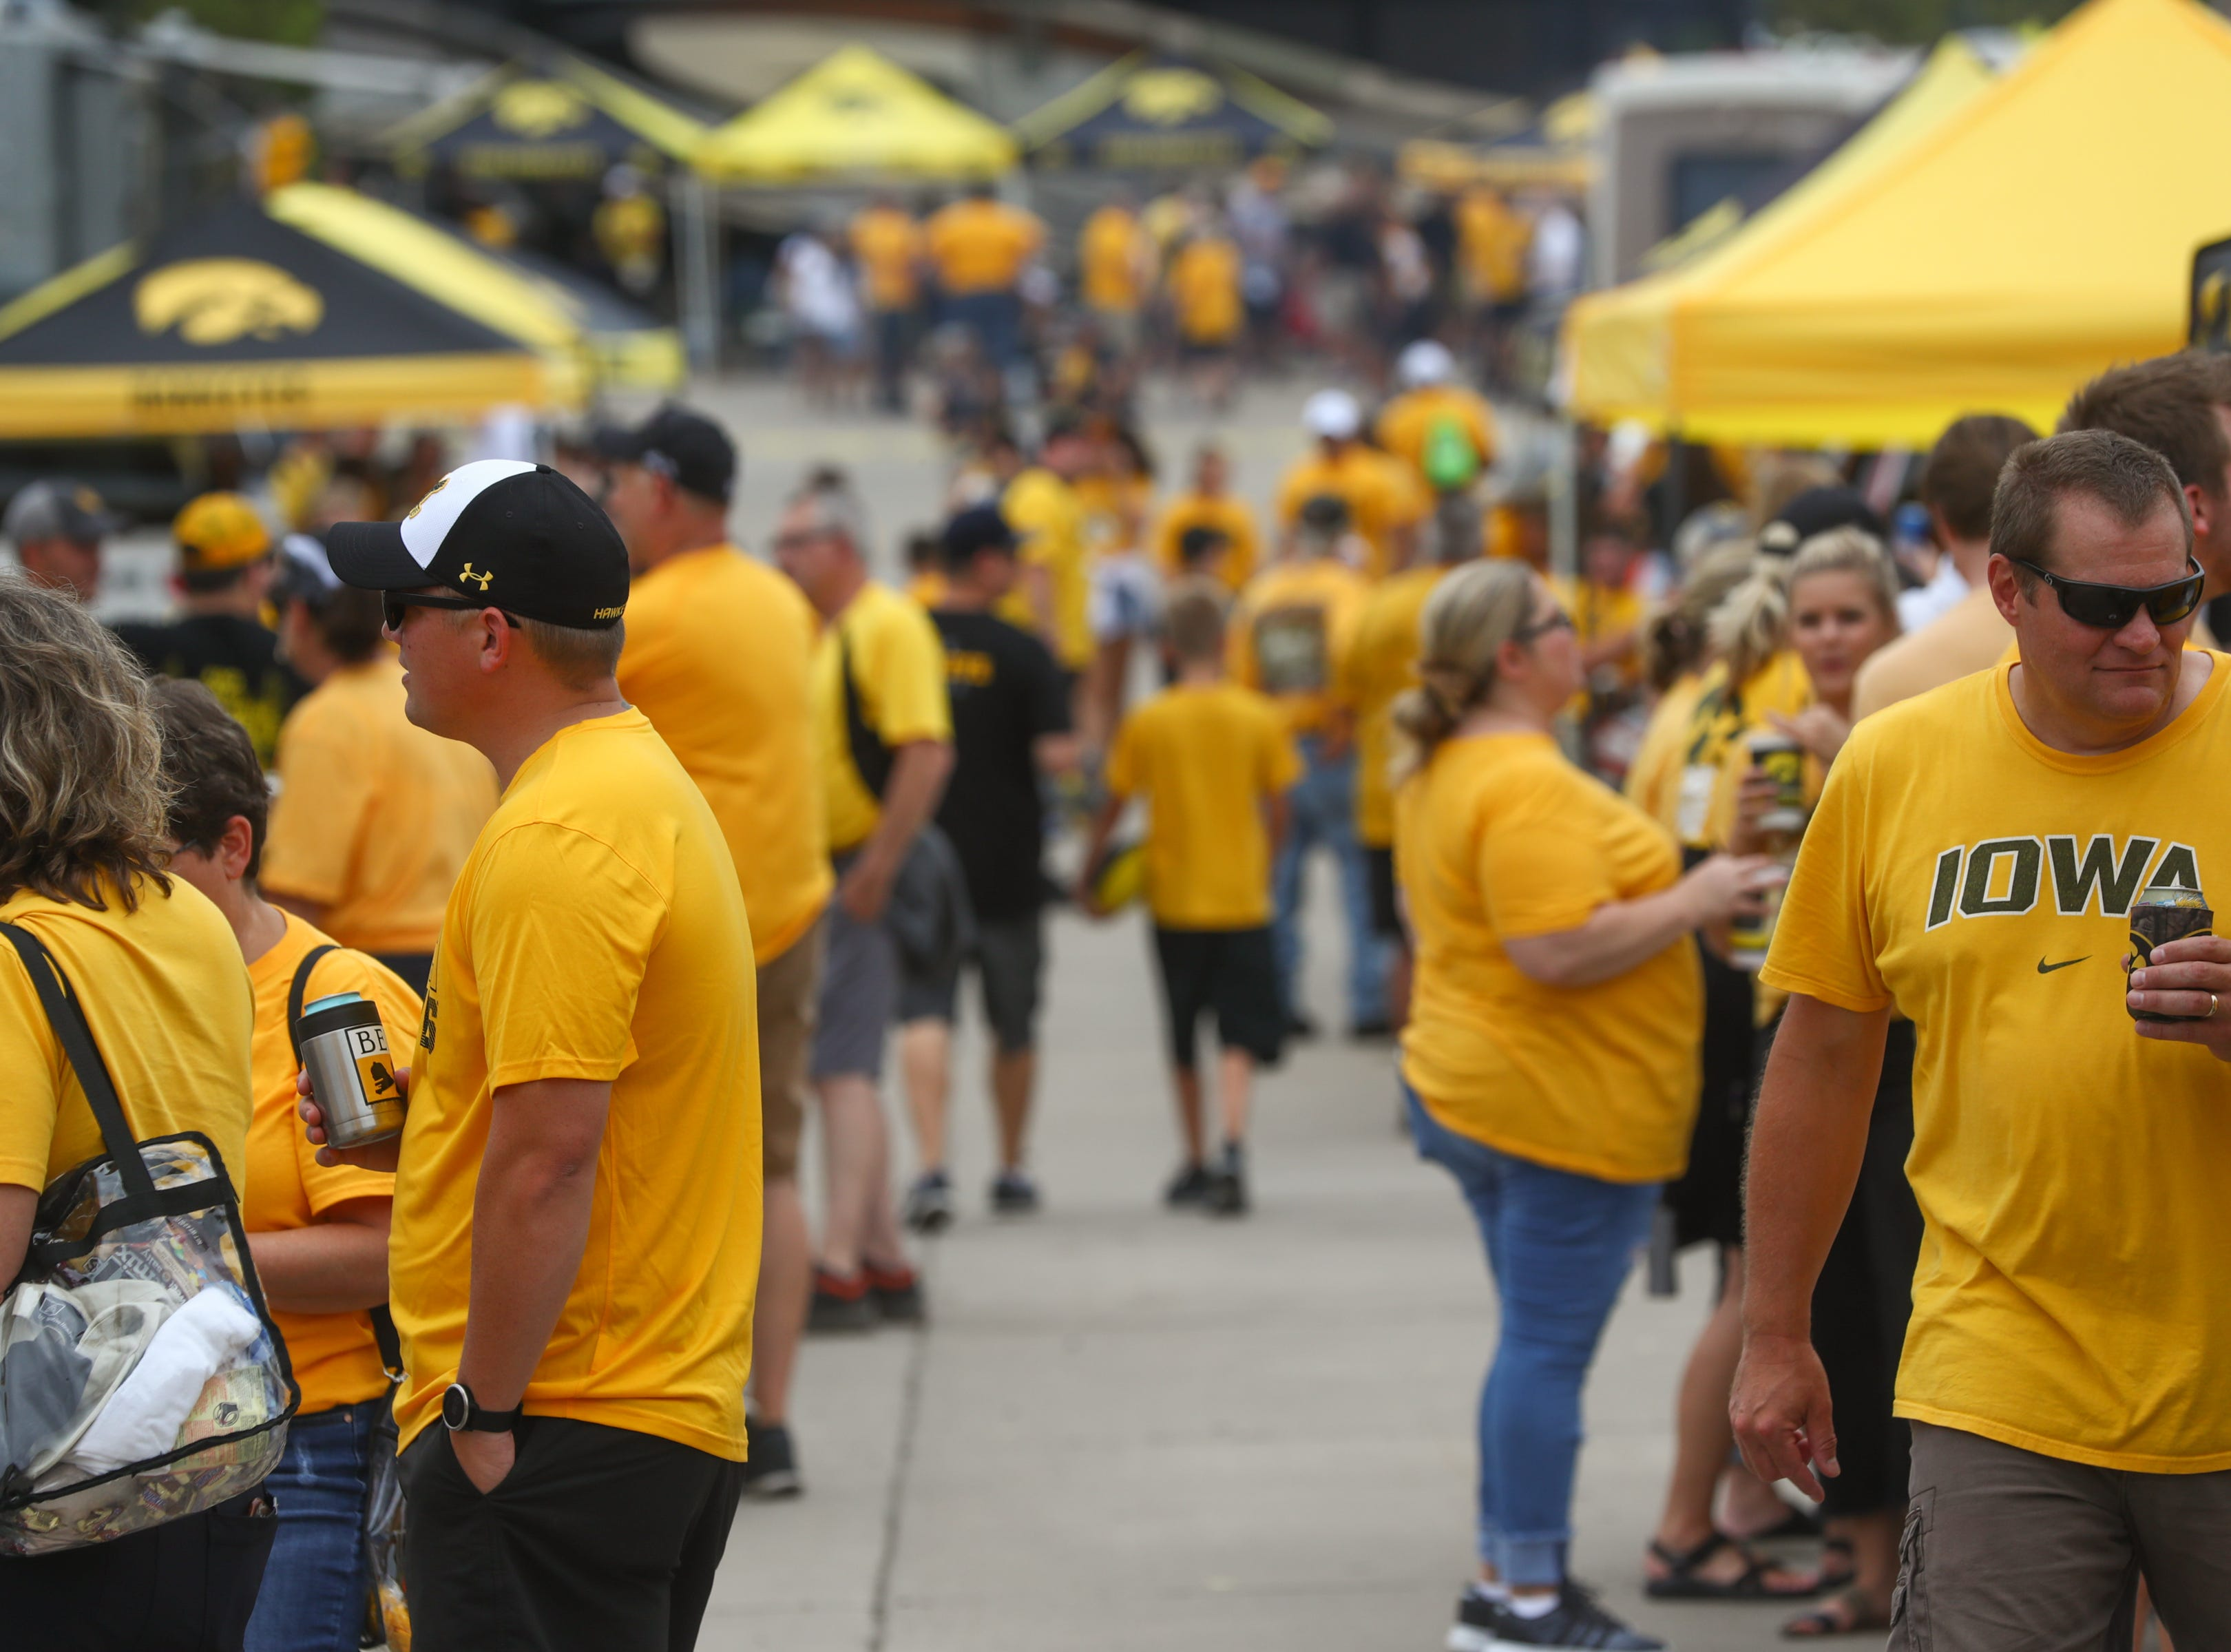 Iowa fans tailgate outside Kinnick Stadium before the Hawkeyes' game against Northern Illinois on Satuday, Sept. 1, 2018.